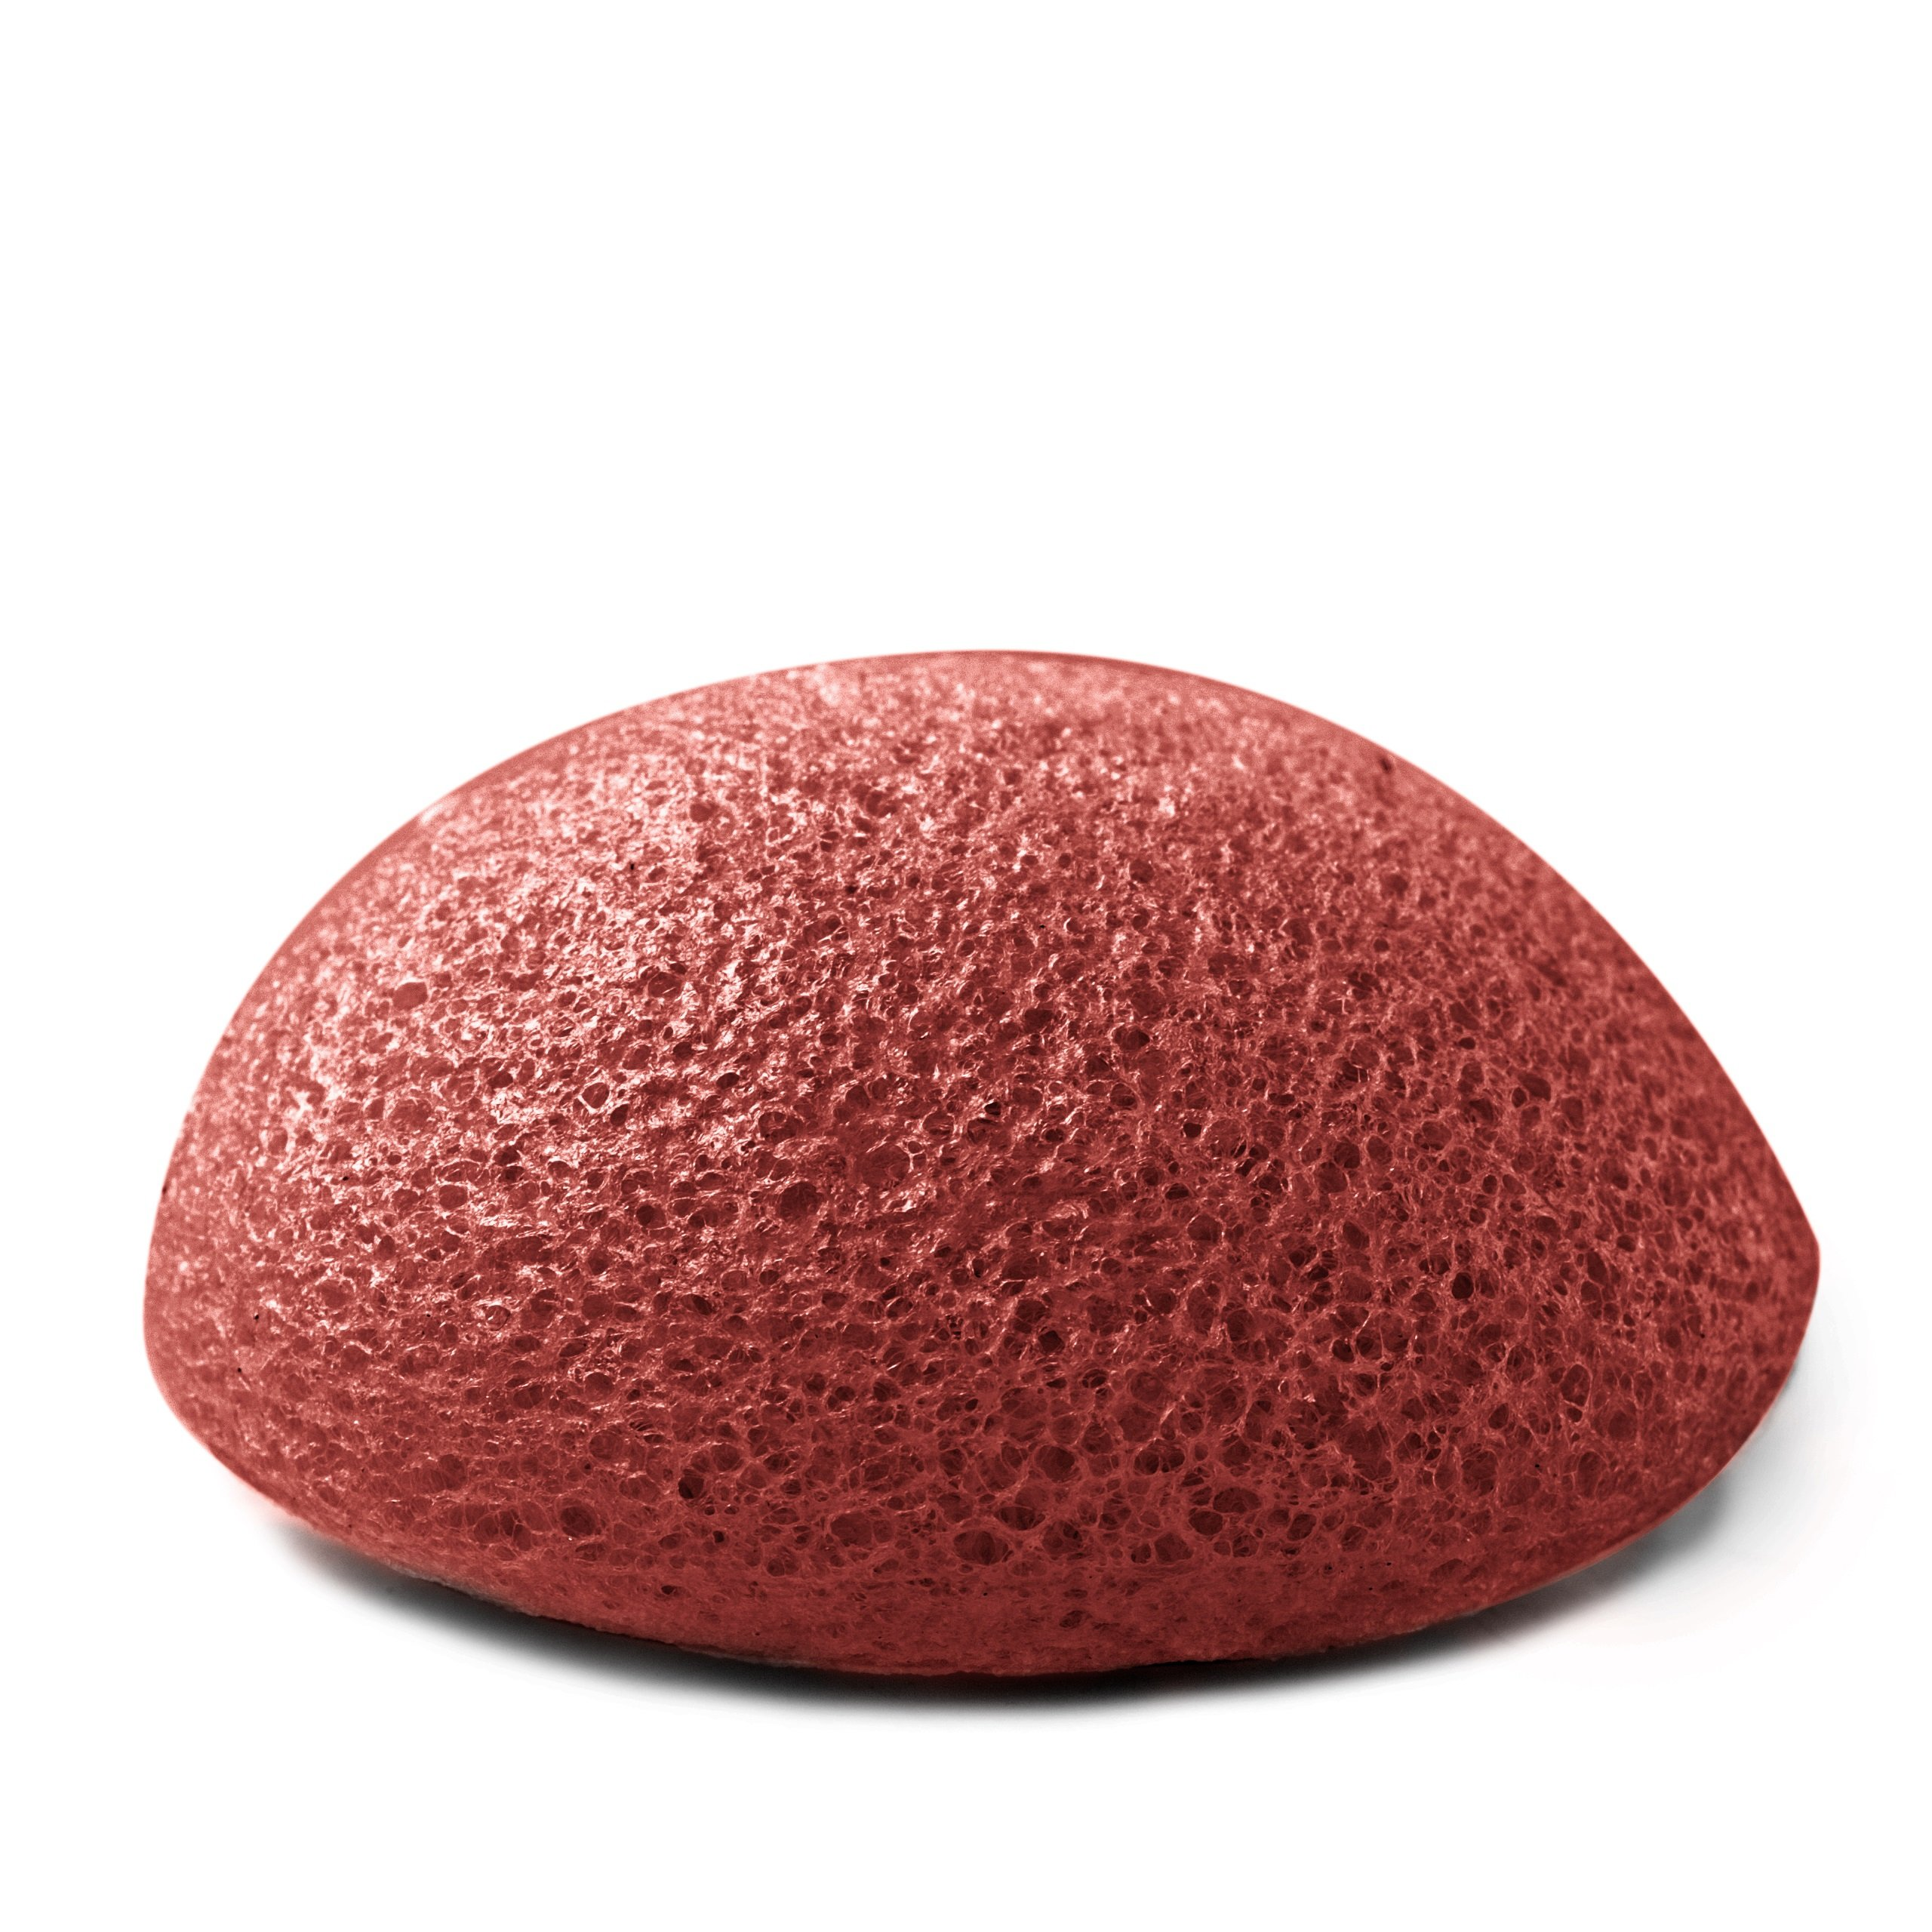 Premium Konjac Sponge (Pack of 100, French Red Clay)